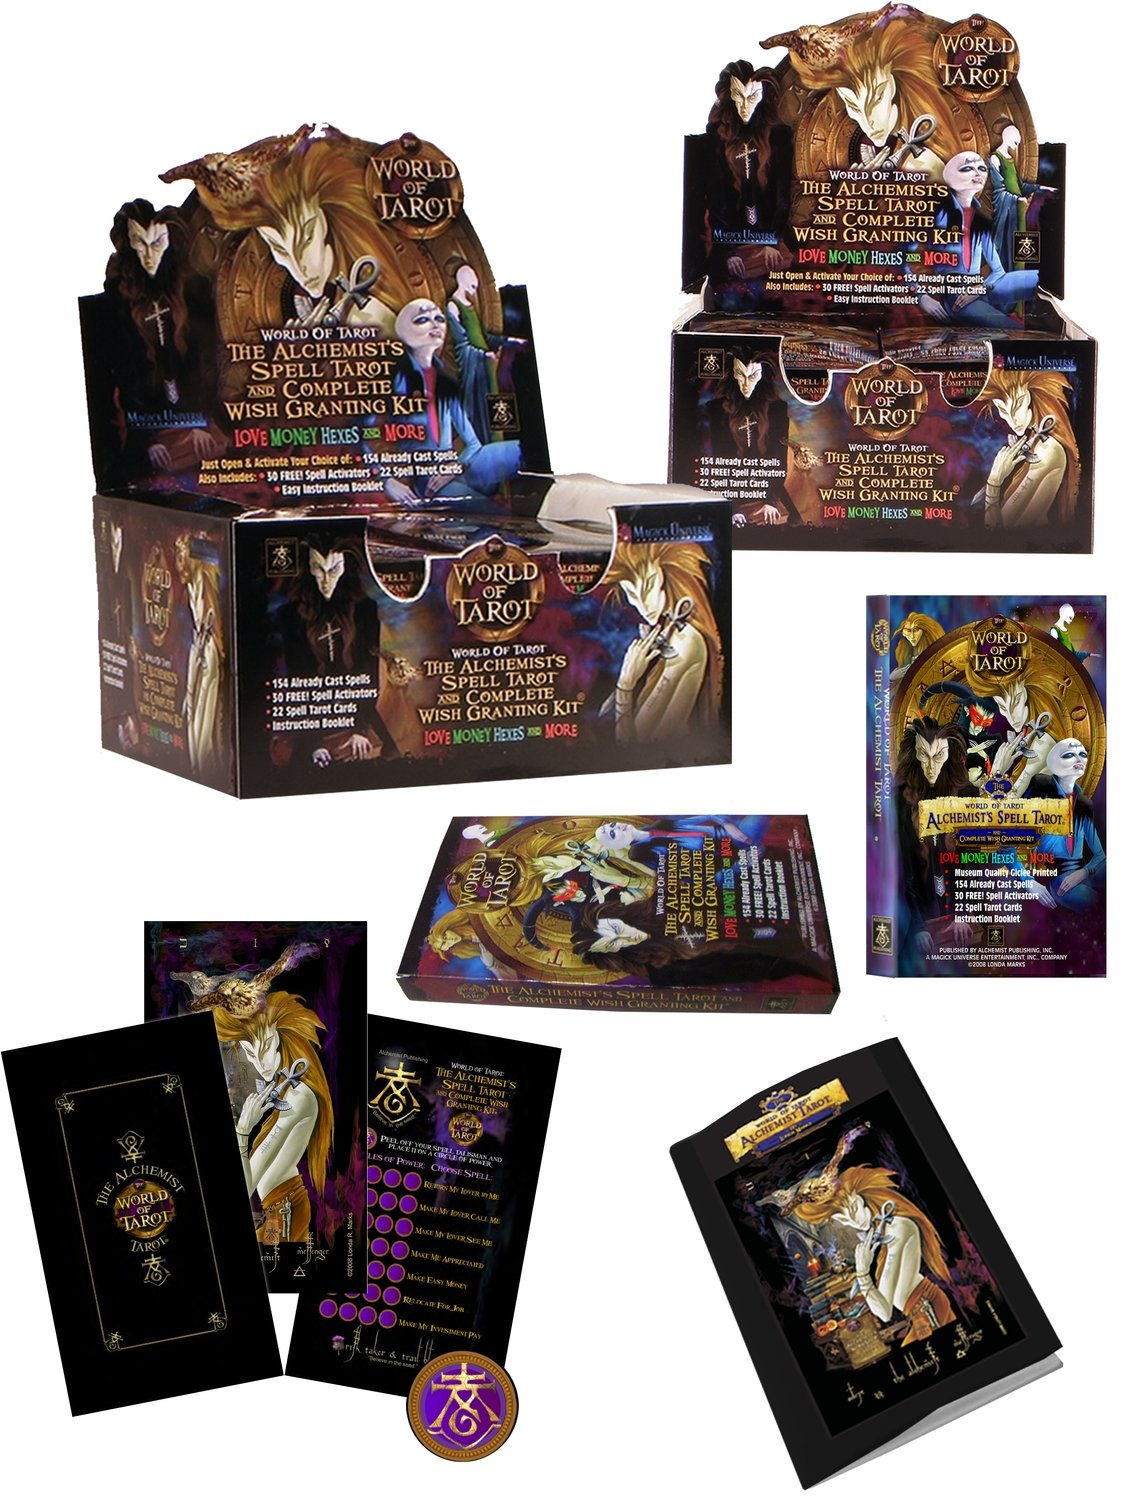 The Alchemist's Spell Tarot & Complete Wish Granting Kit - 10-Deck Counter  Display